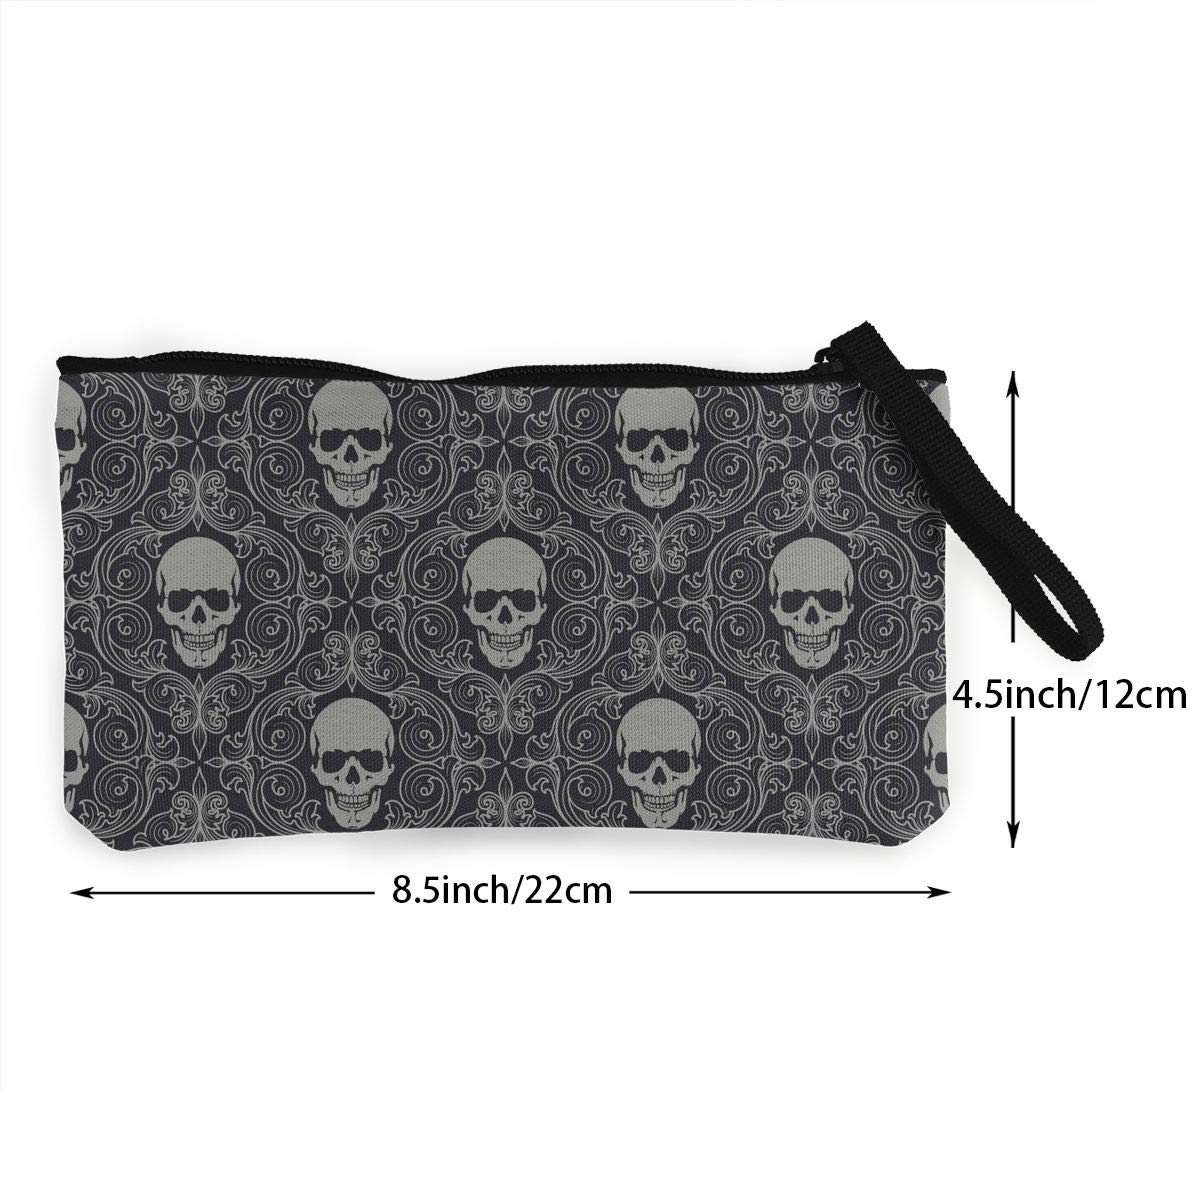 Coin Pouch Skull Flower Pattern Canvas Coin Purse Cellphone Card Bag With Handle And Zipper